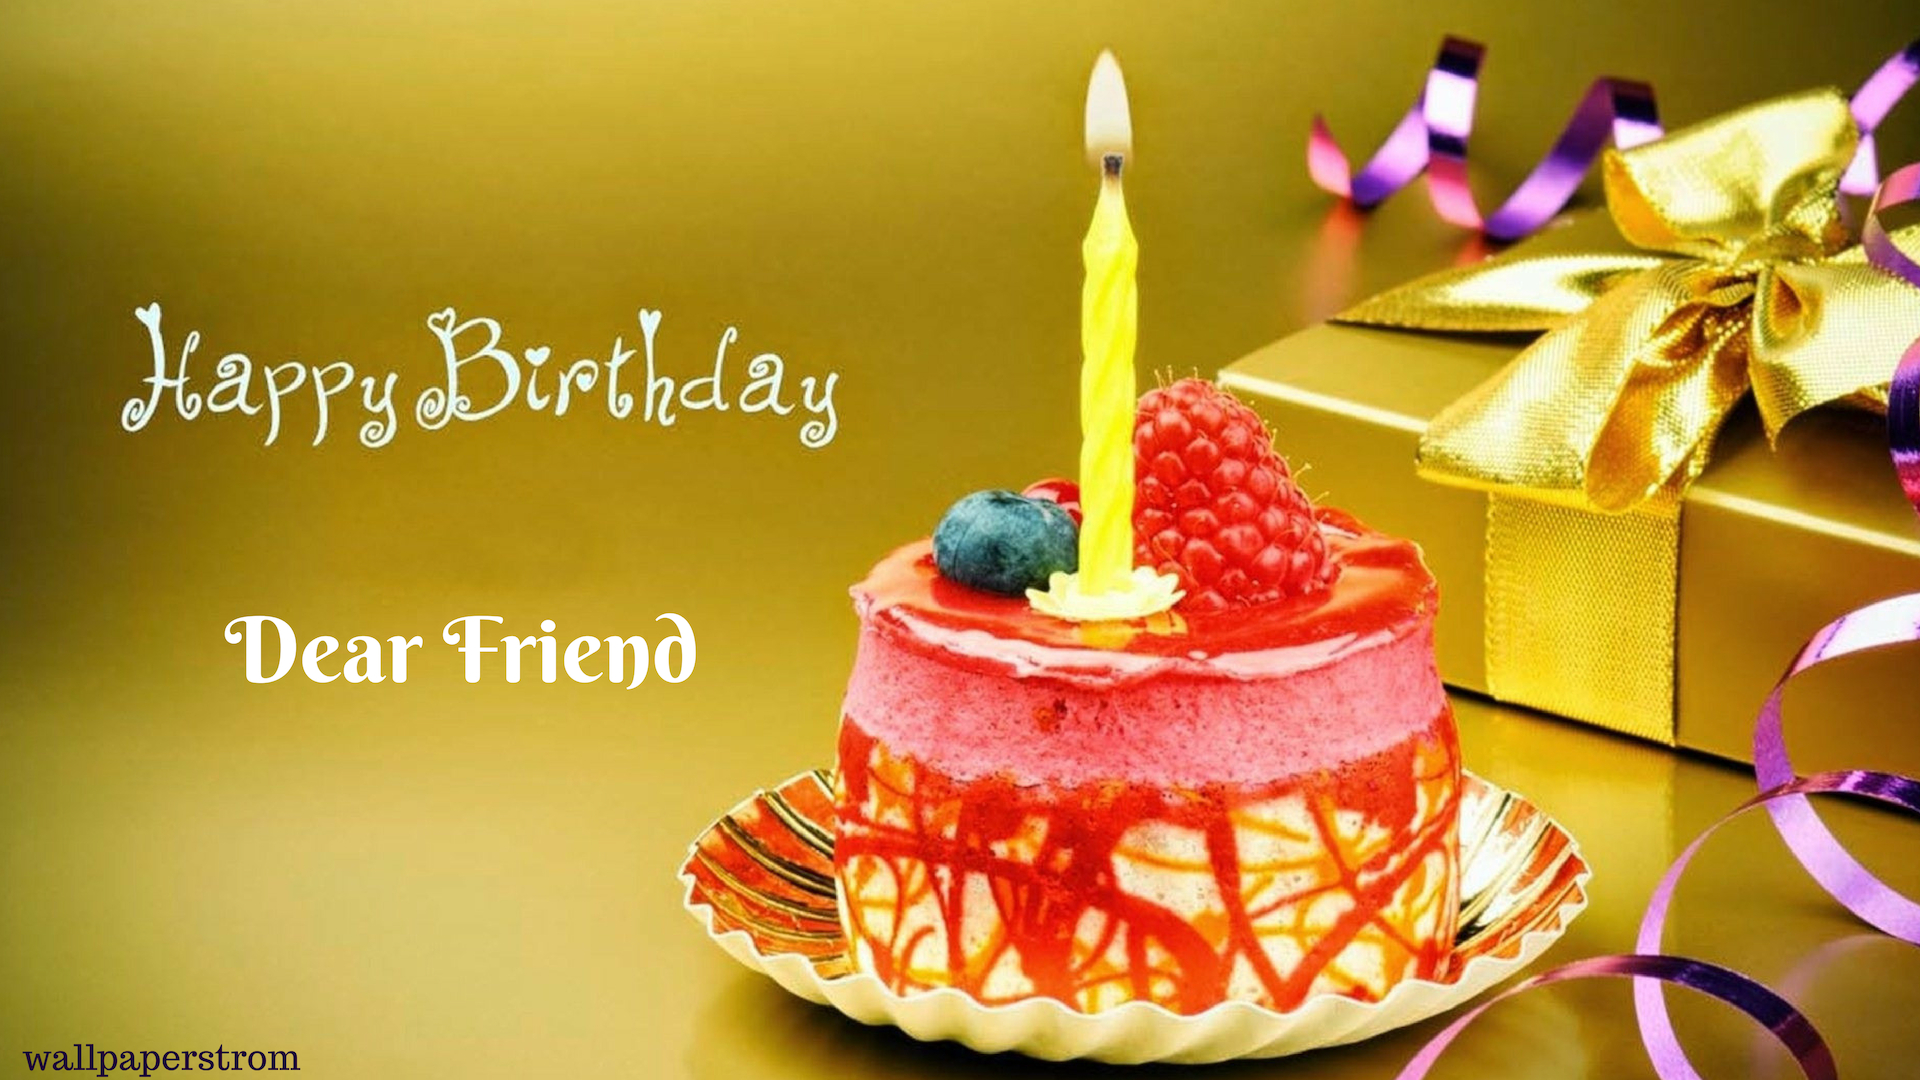 Candle Birthday Cake Happy Birthday Friend Wallpapers 1920x1080 Download Hd Wallpaper Wallpapertip